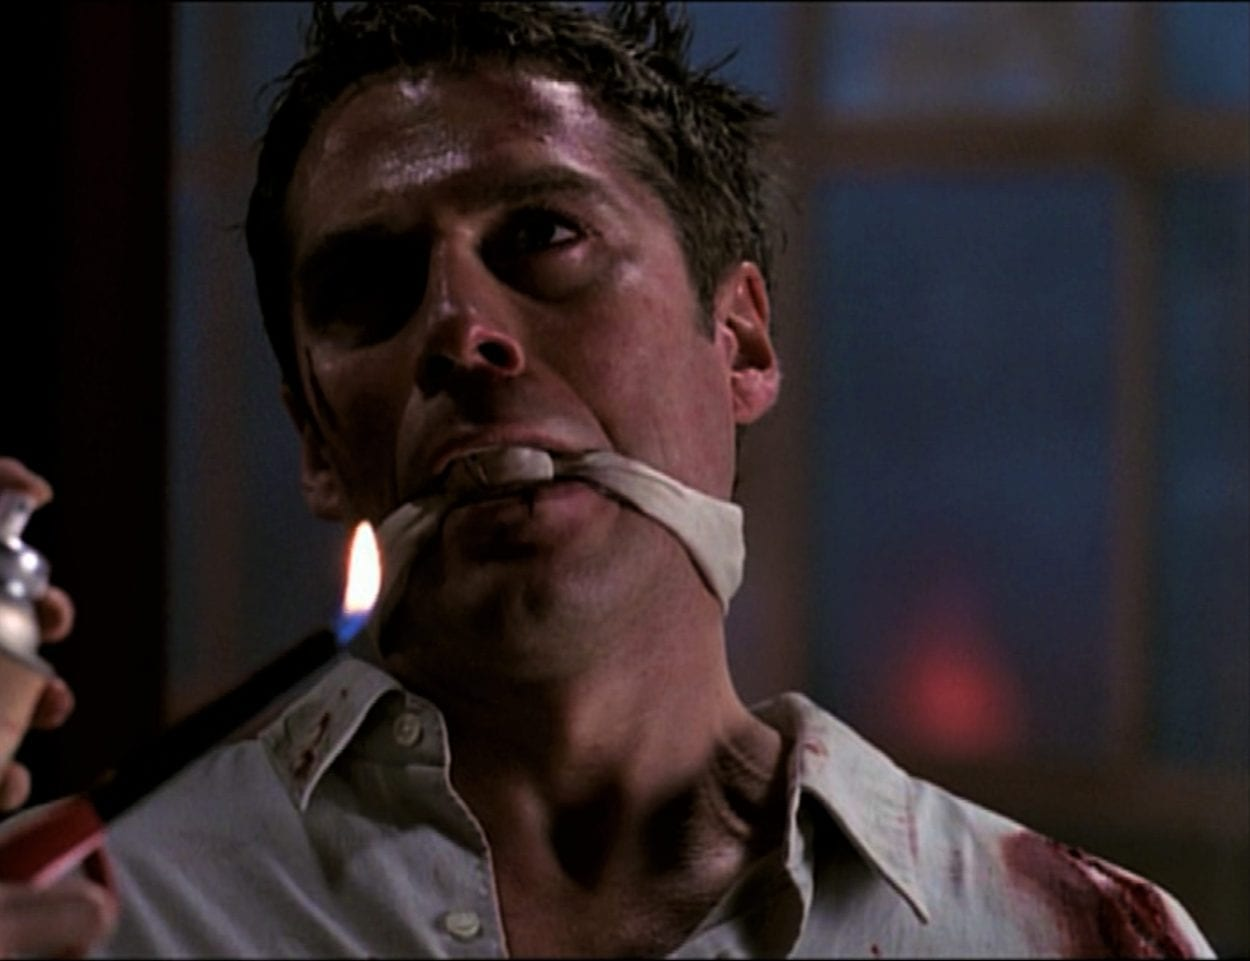 Wesley is gagged and bloody, while Faith prepares to burn him